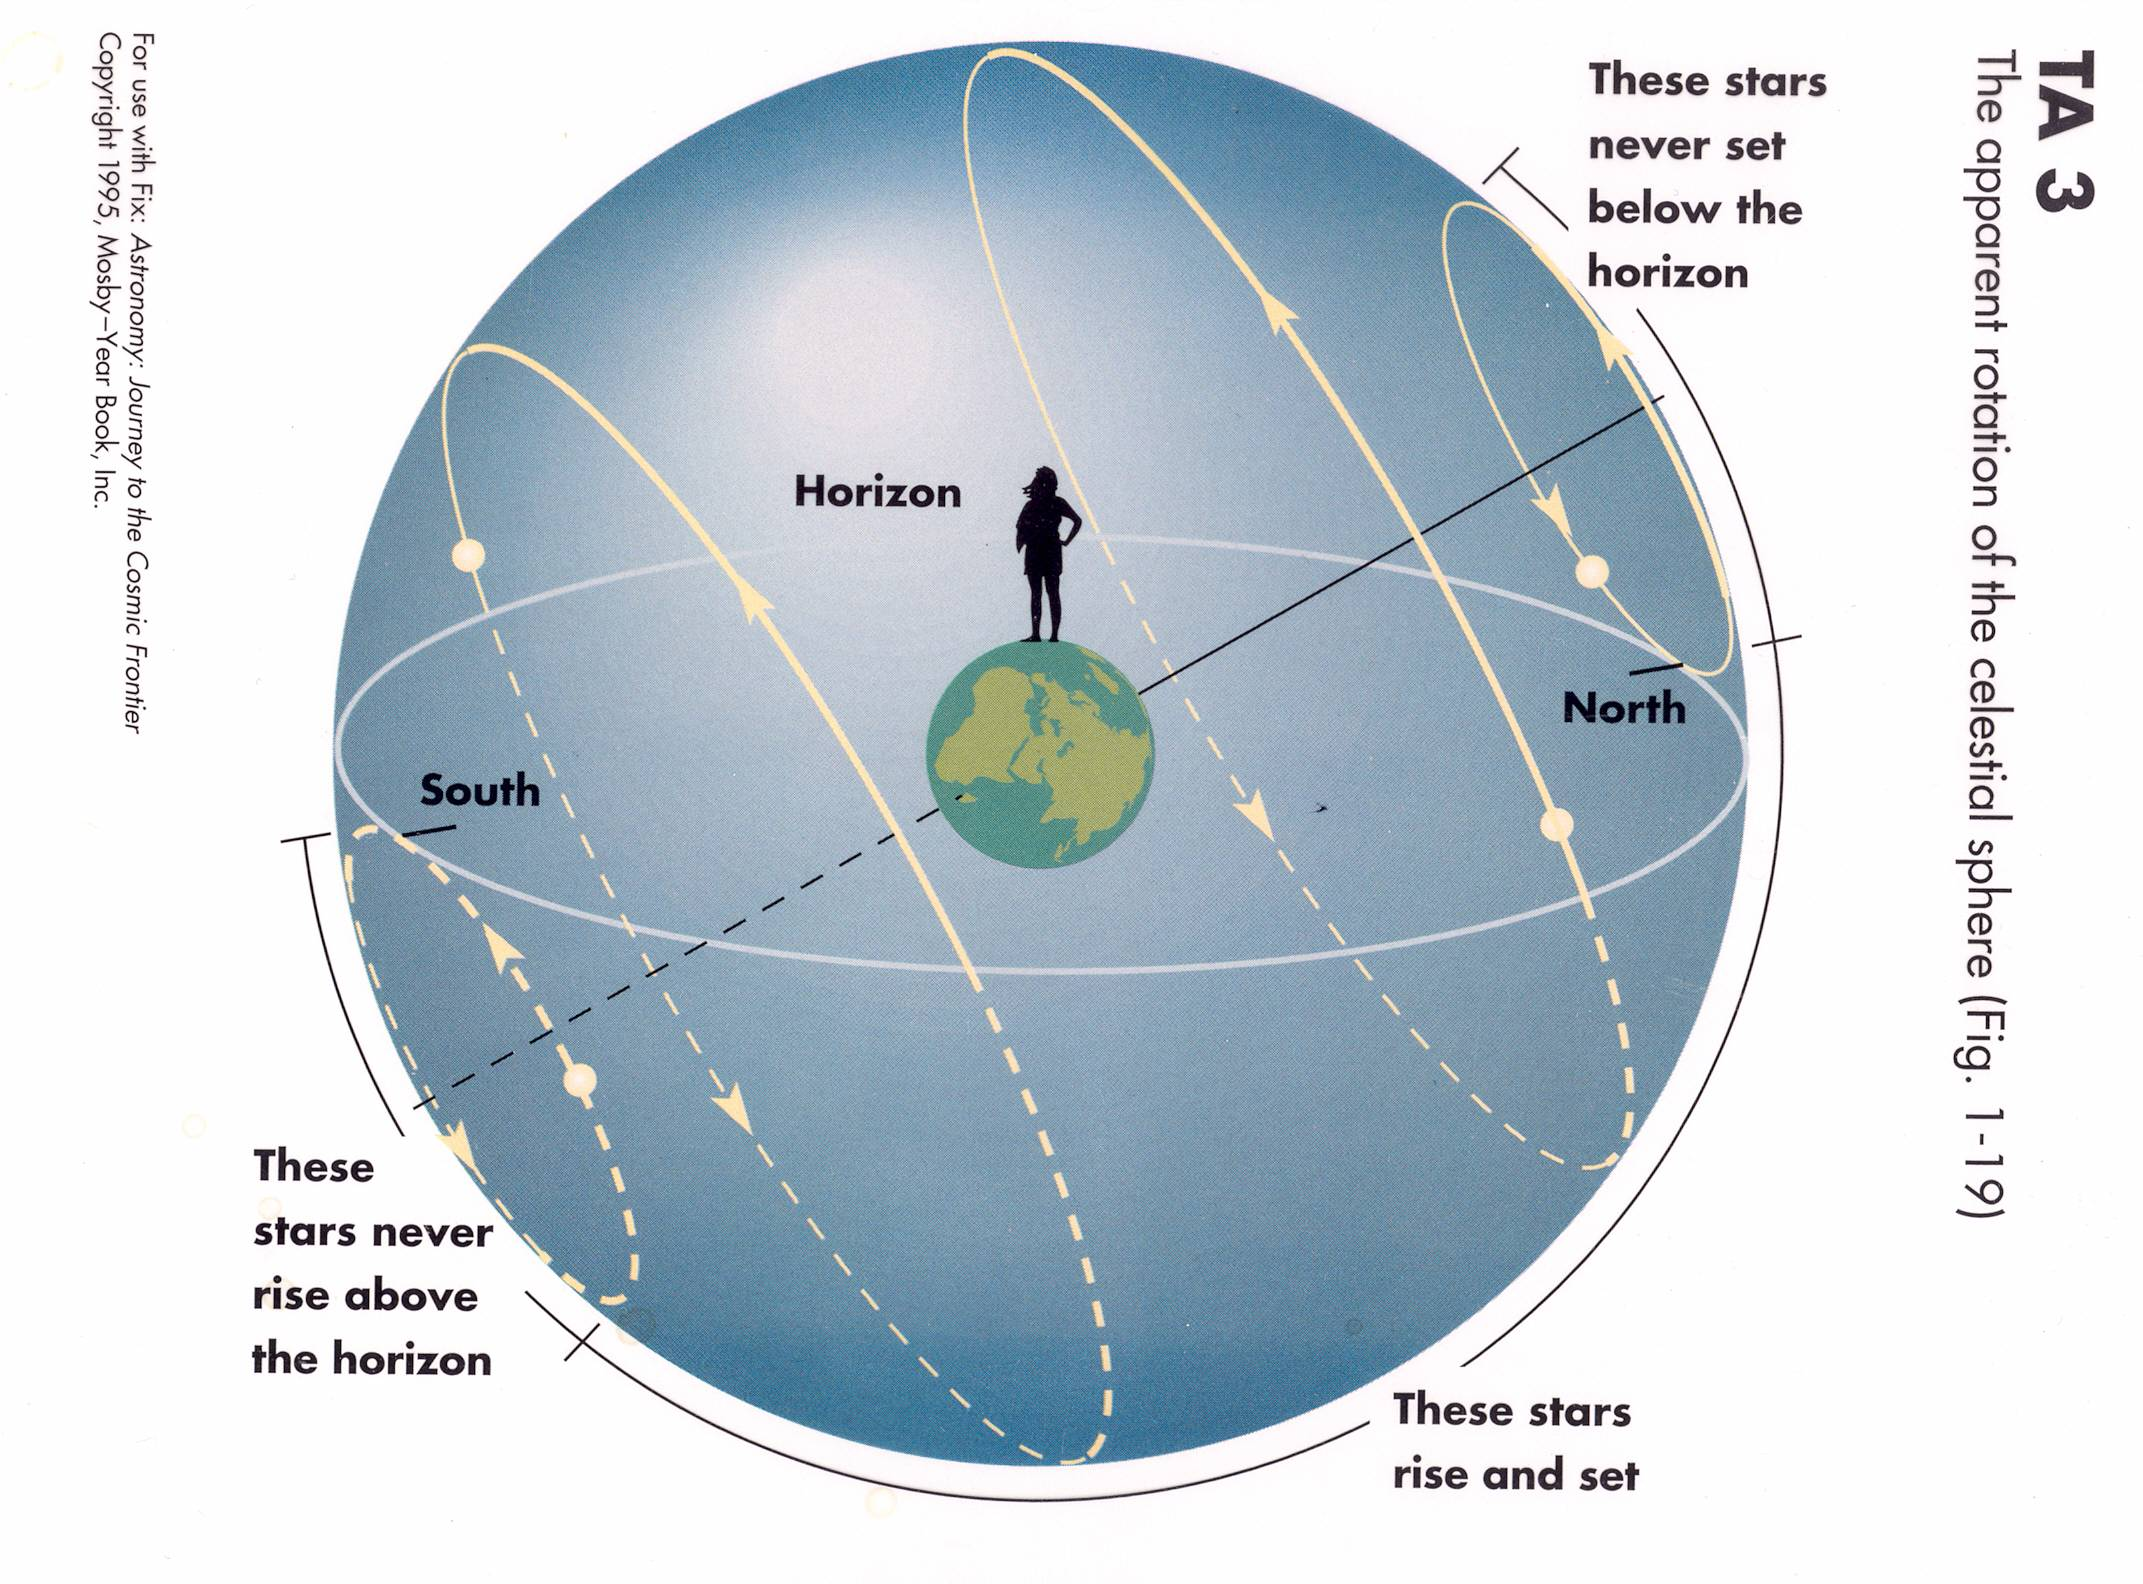 celestial sphere essay The celestial sphere and coordinates the celestial sphere was thought by the ancients lobe a real sphere surrounding the earth at some indeterminate distance with the stars whatever they were essay on night sky upon it.